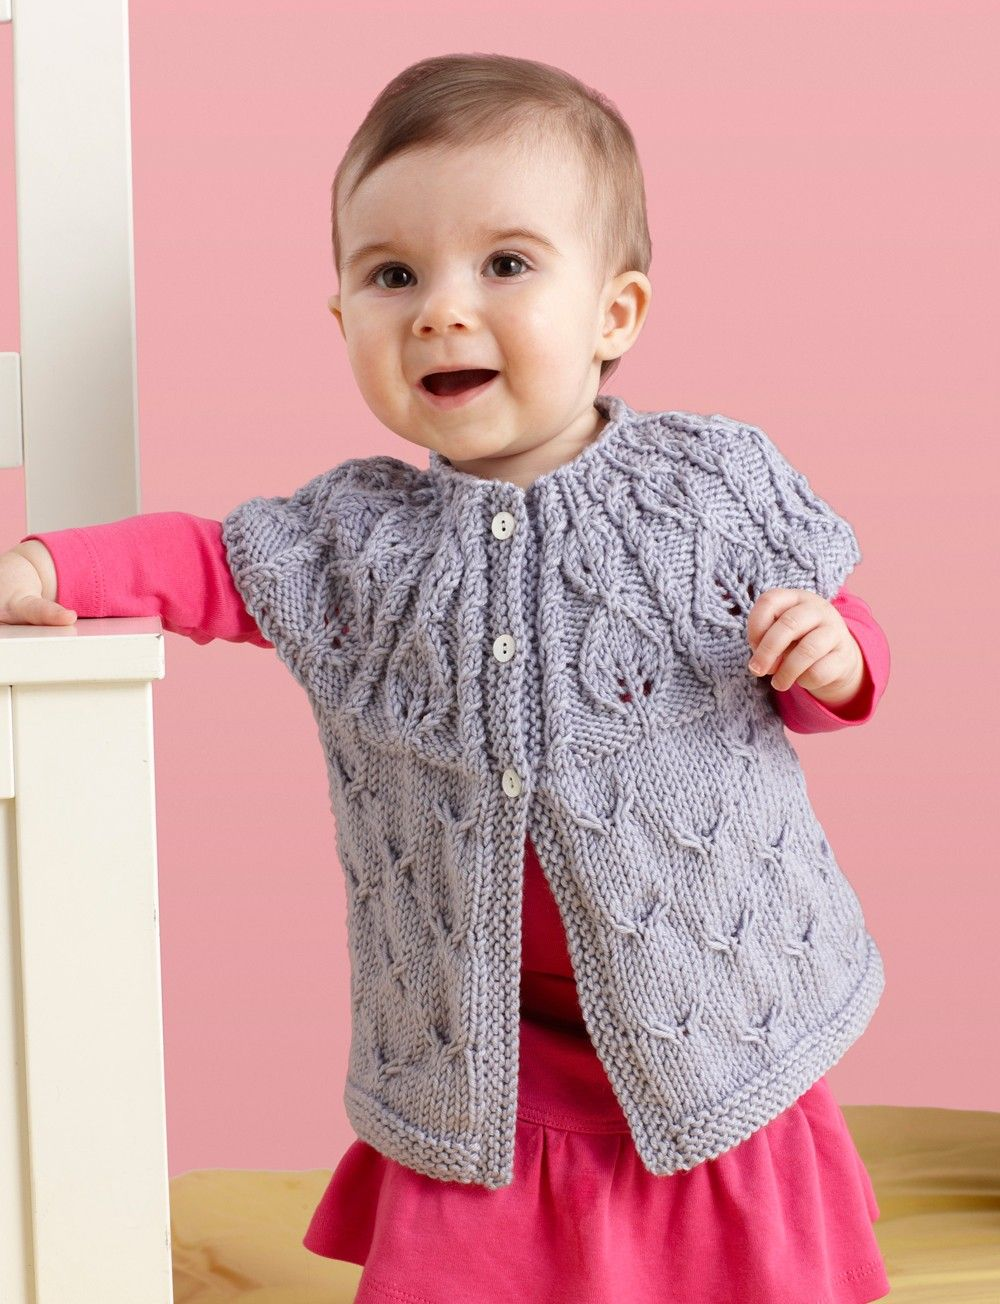 10 free baby sweater knitting patterns knitting patterns 10 free baby sweater knitting patterns bankloansurffo Choice Image